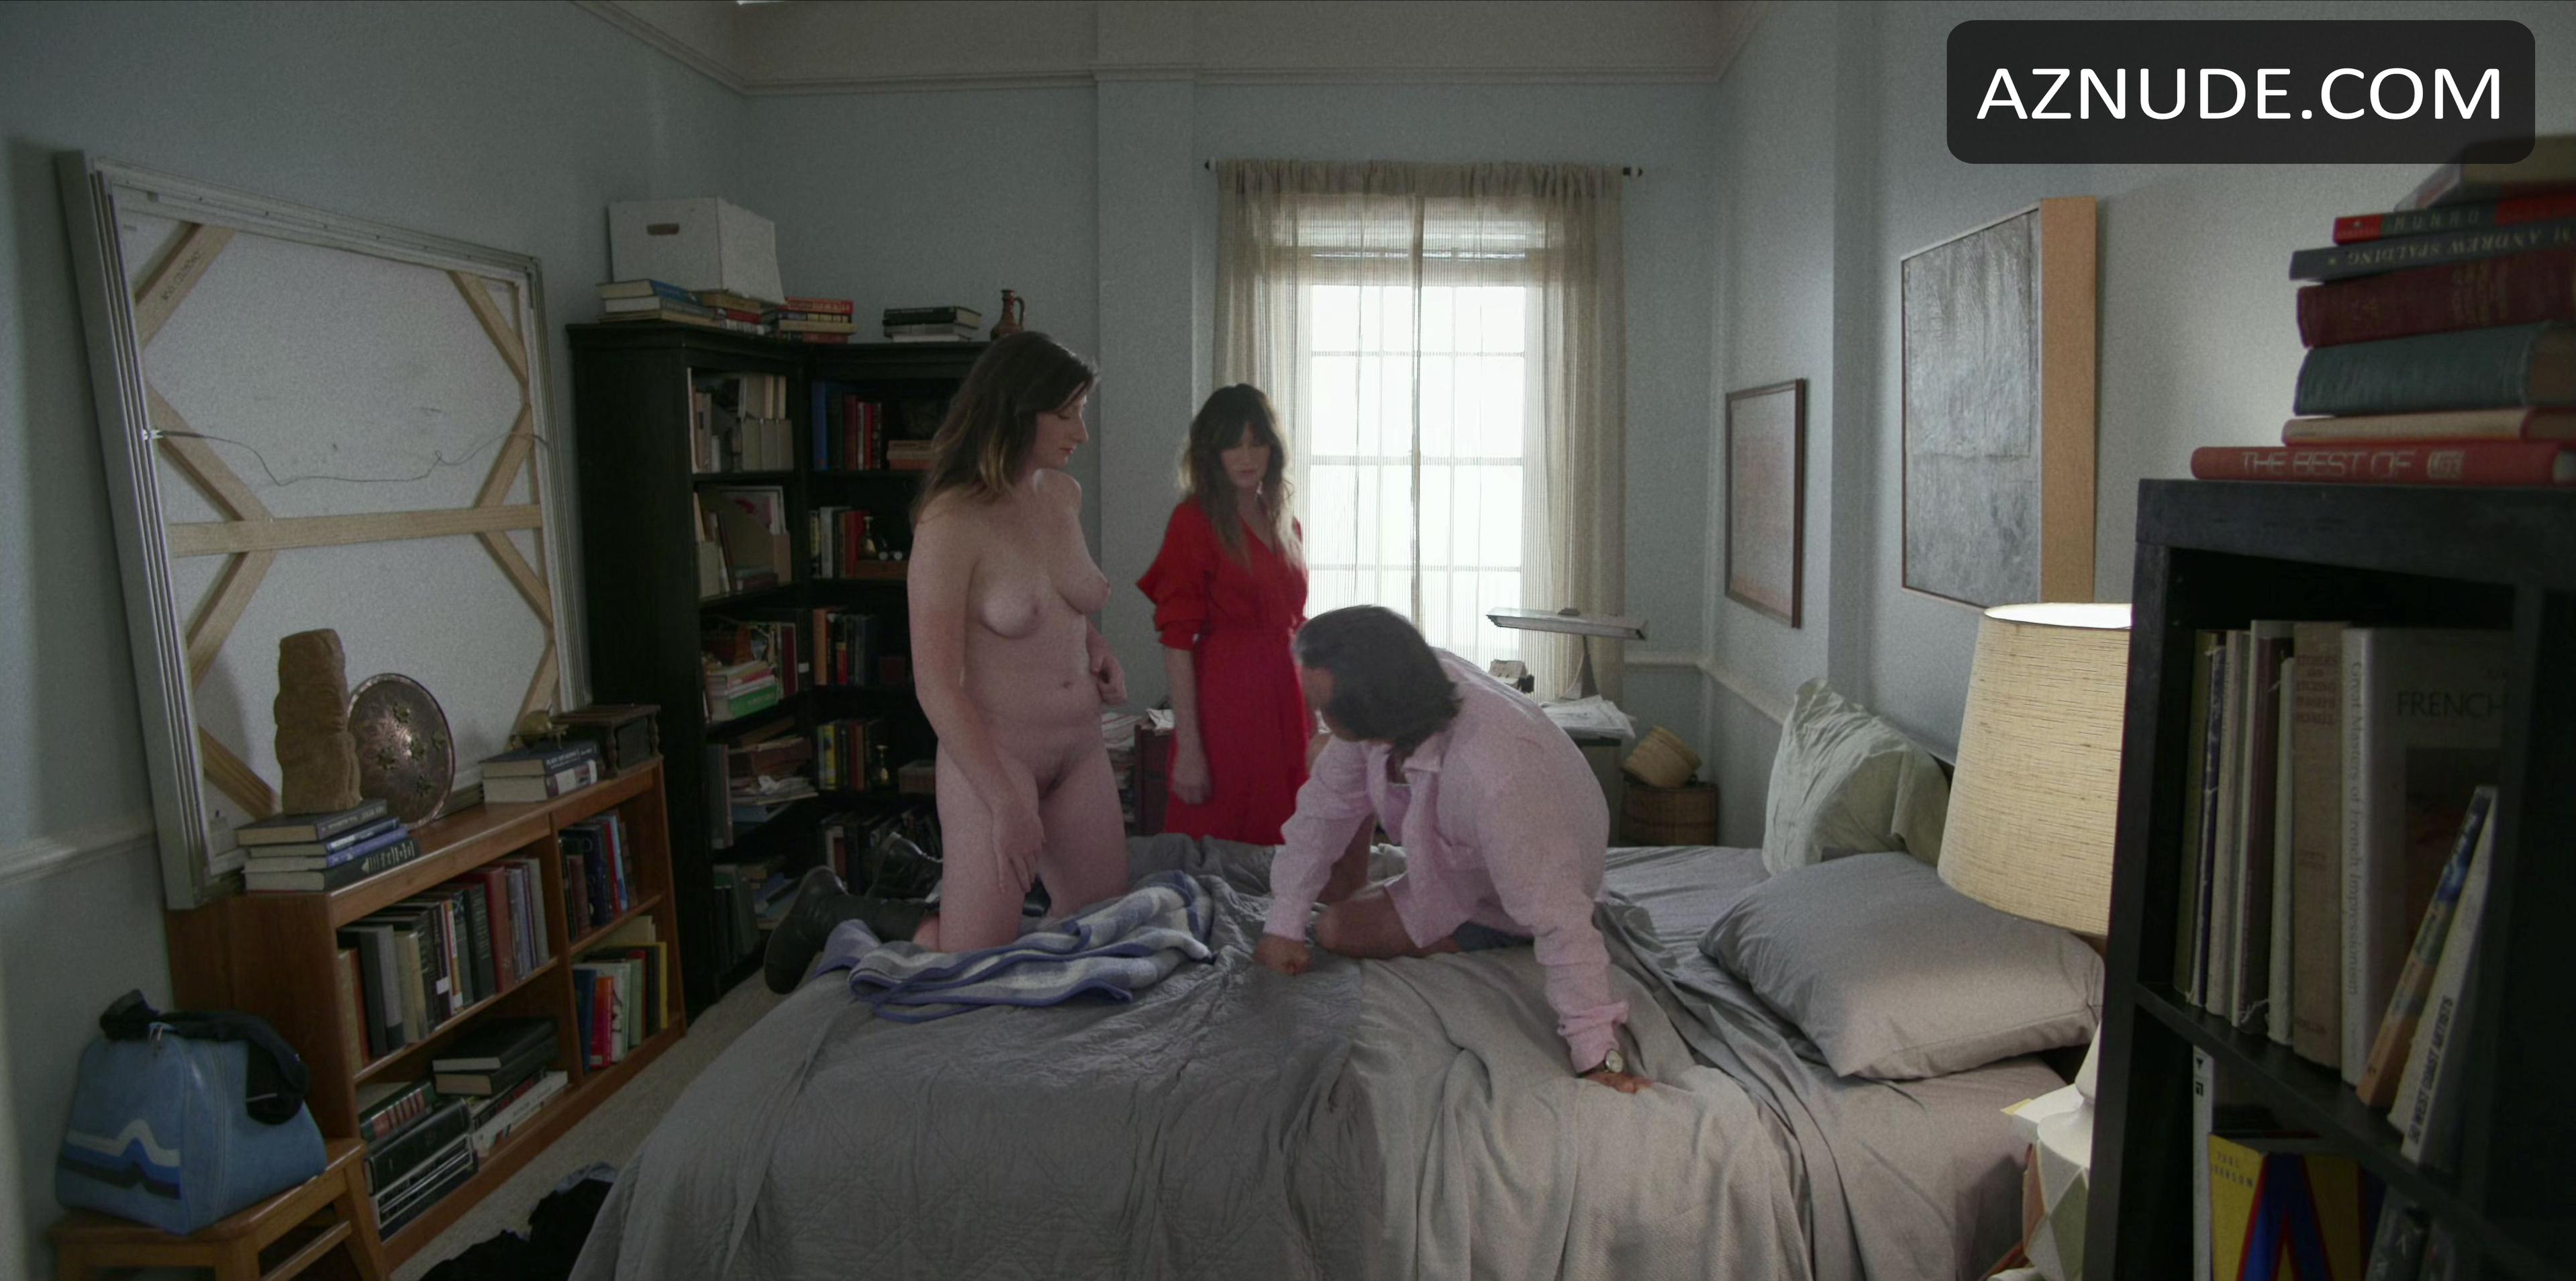 Kate winslet nude bush and boobs in jude scandalplanetcom - 3 part 3